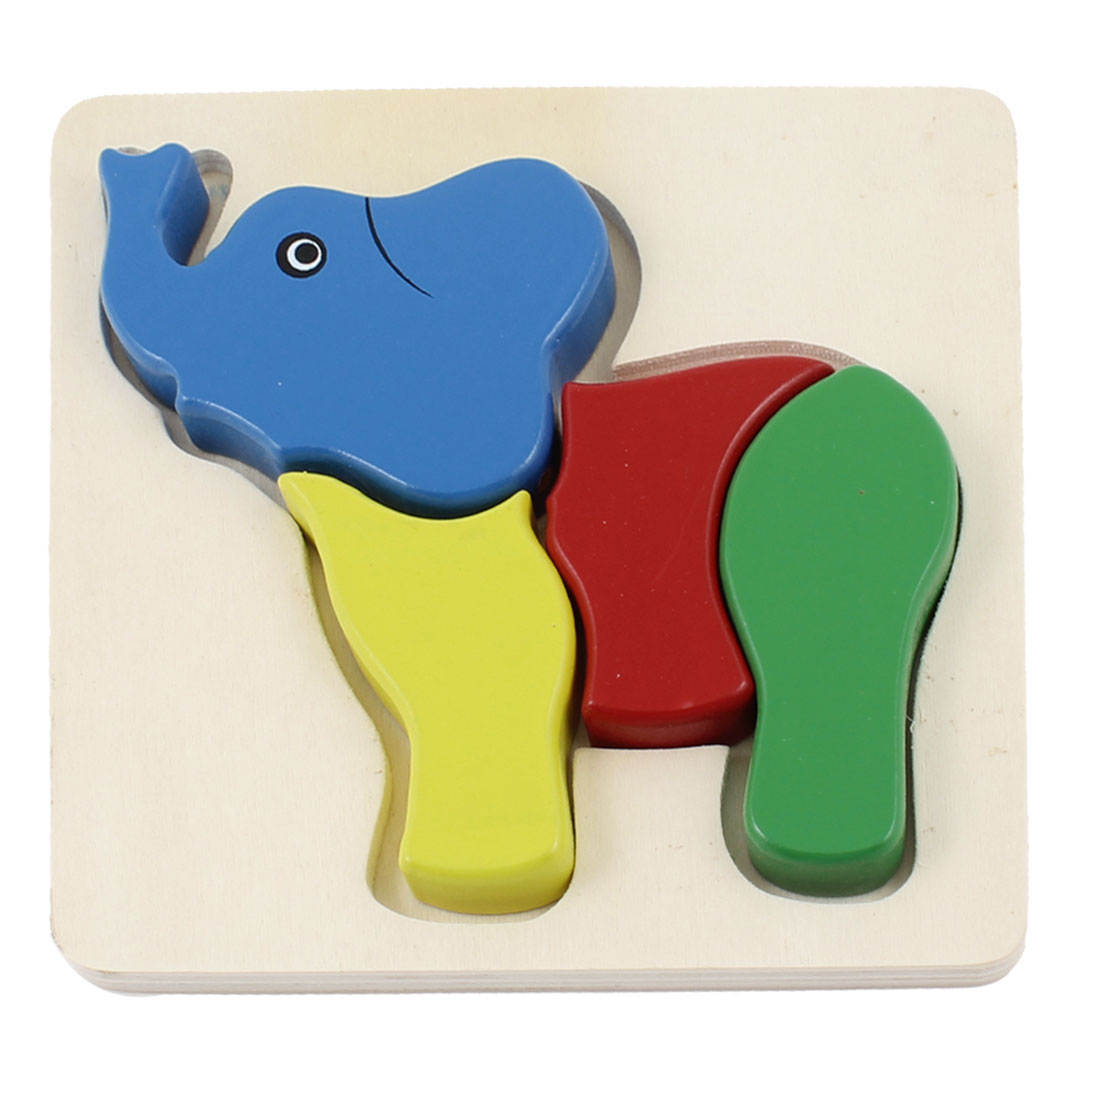 Colored Elephant Model Woodcraft Construction Kits Toy